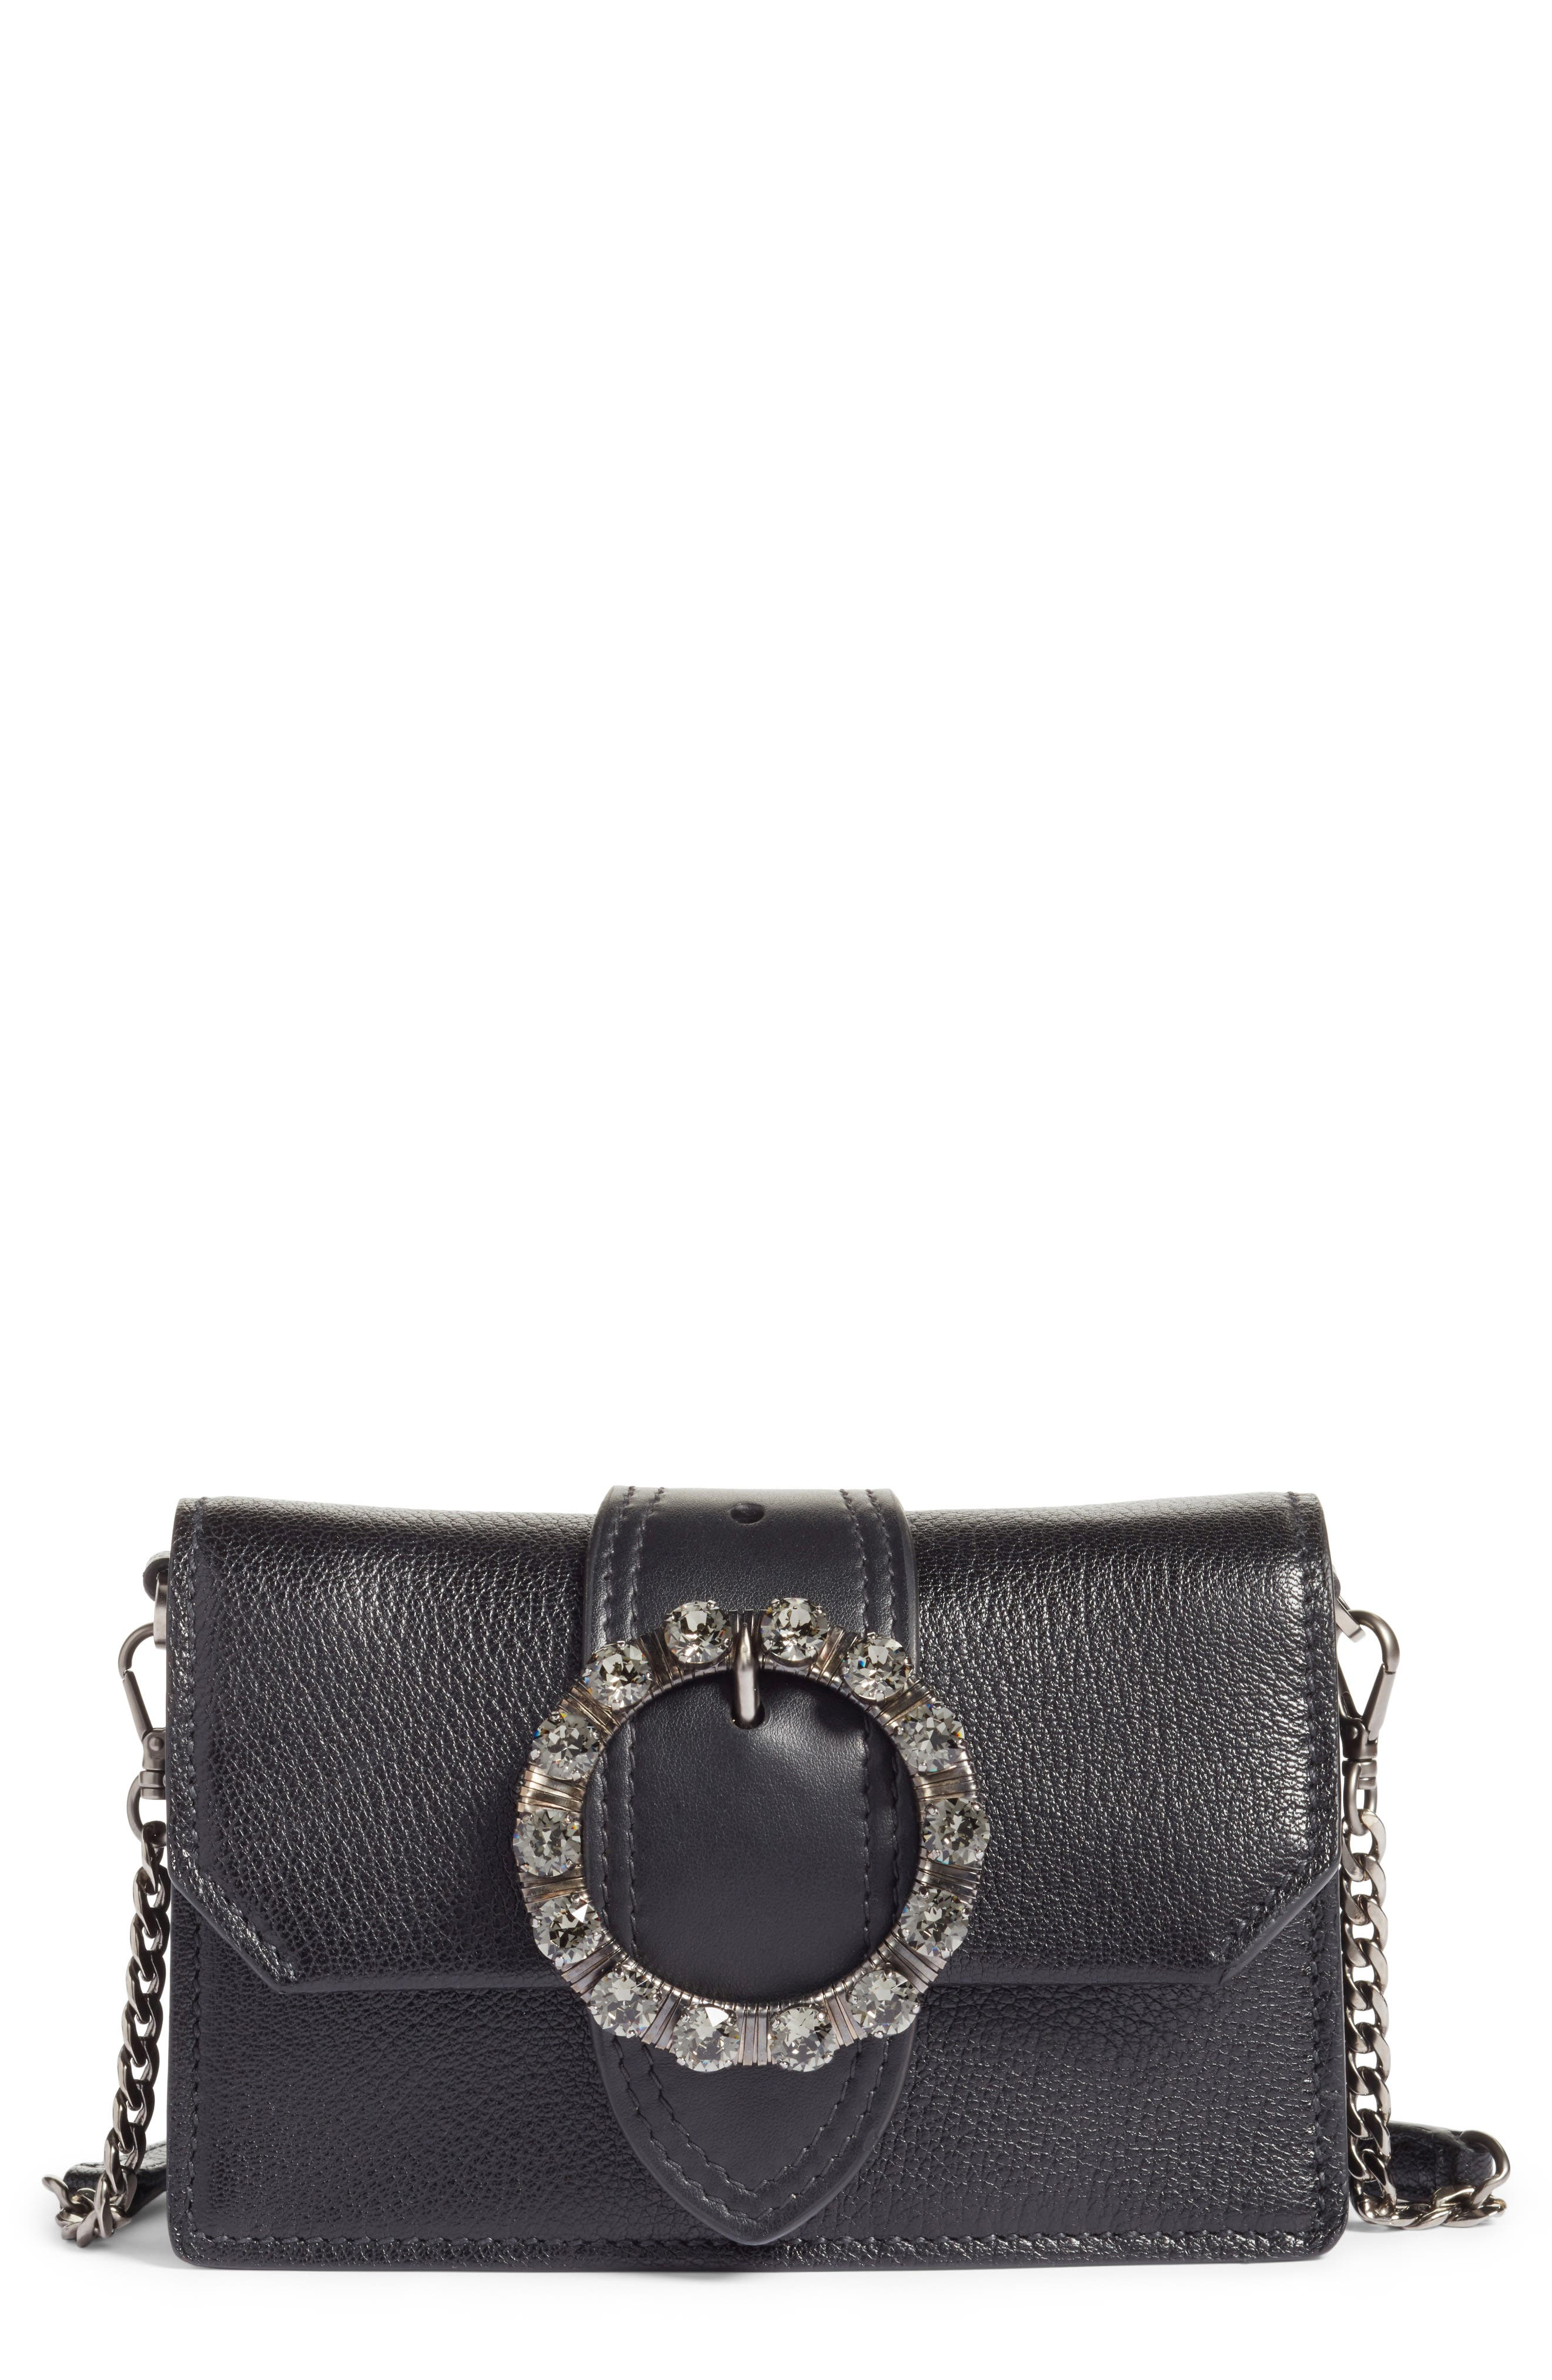 Lady Madras Crystal Embellished Leather Crossbody Bag,                         Main,                         color, 001